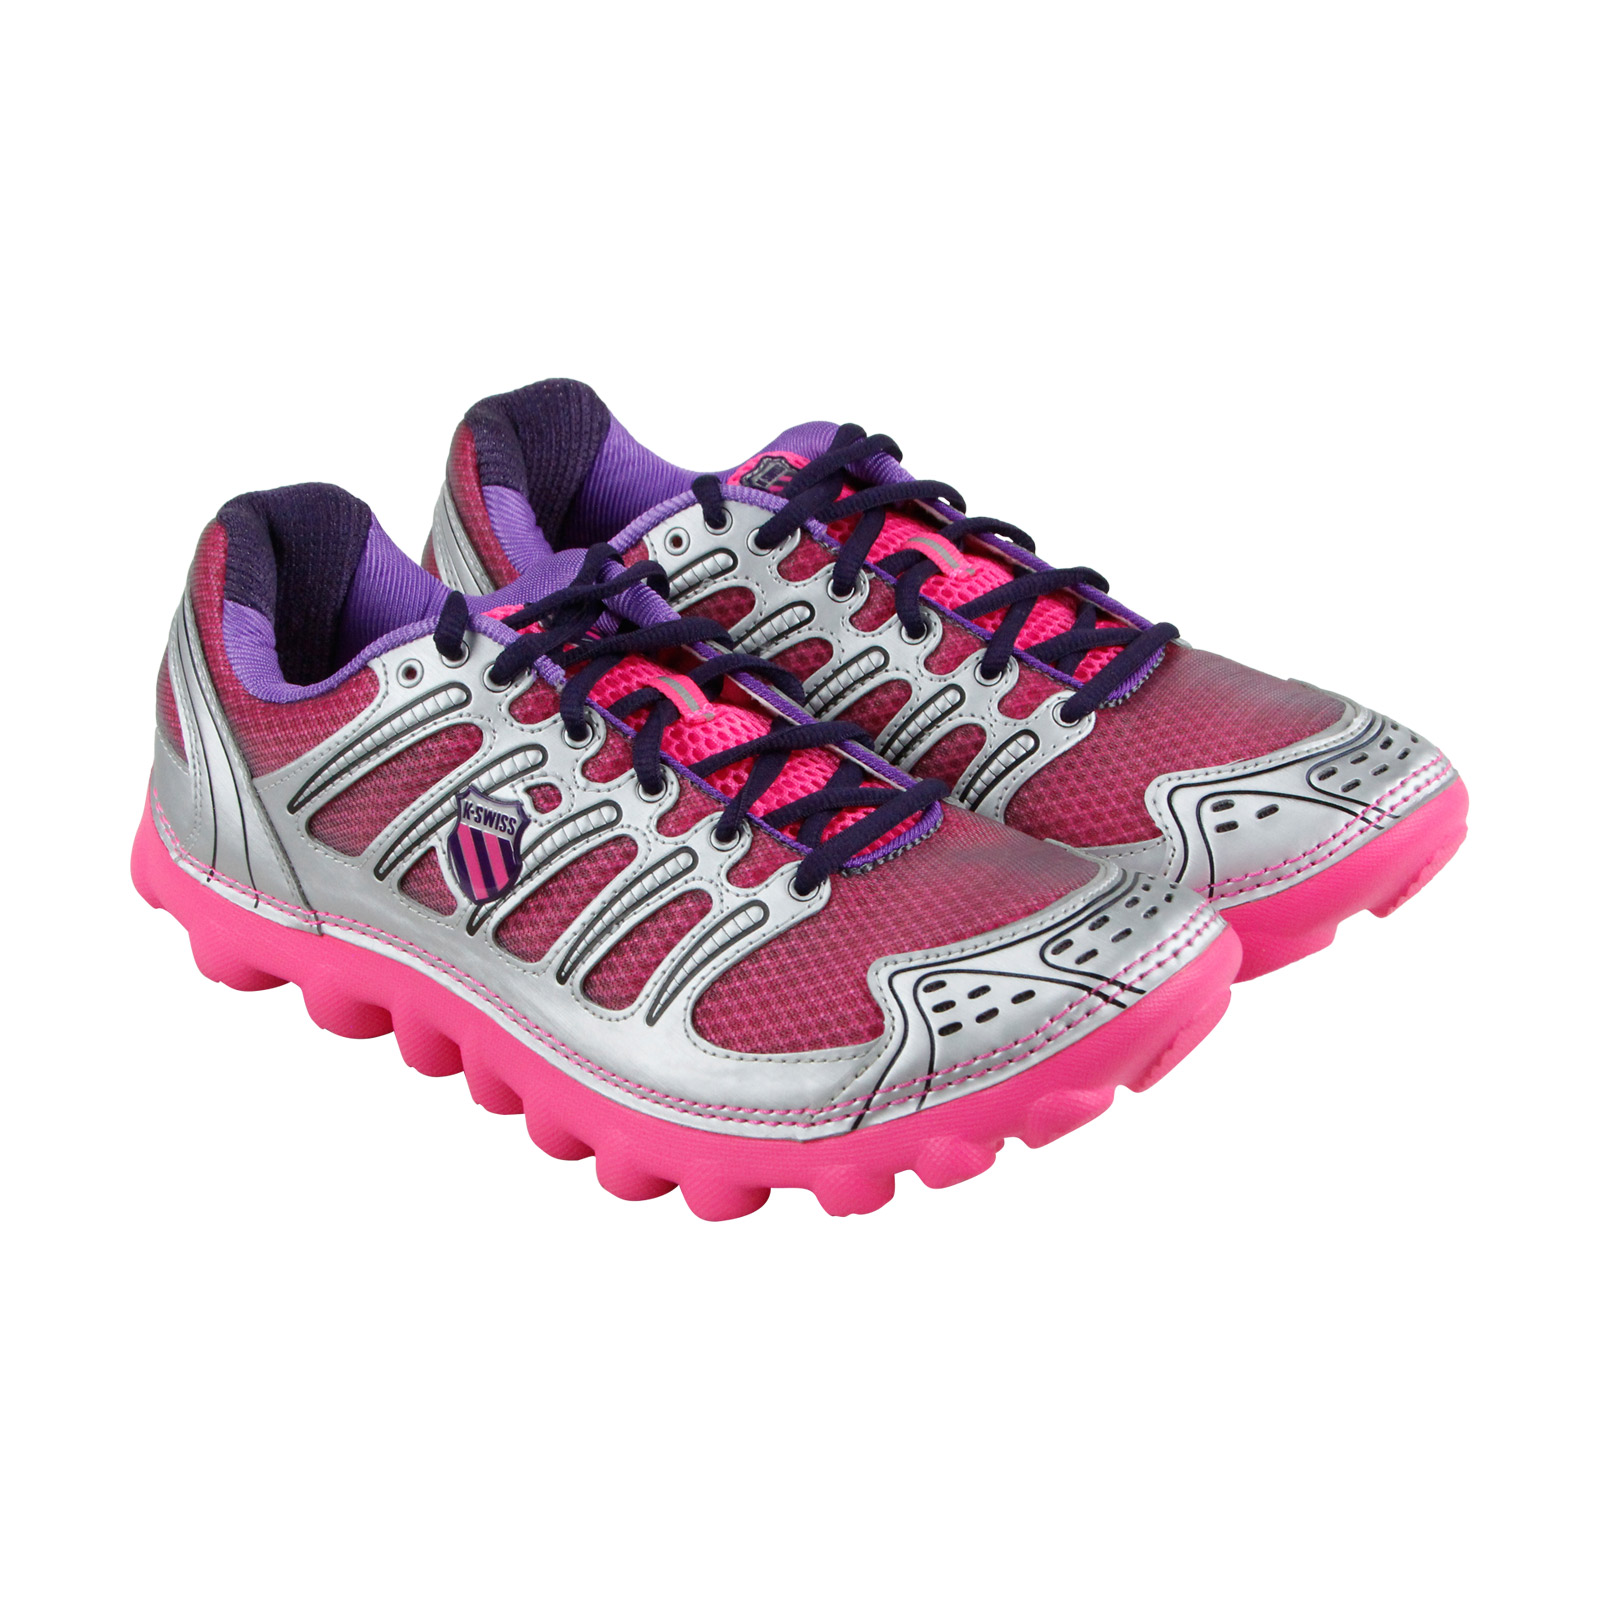 26c730a3fa7f K-Swiss - K-Swiss Vertical Tubes Cali Womens Pink Mesh Athletic Lace Up  Training Shoes - Walmart.com